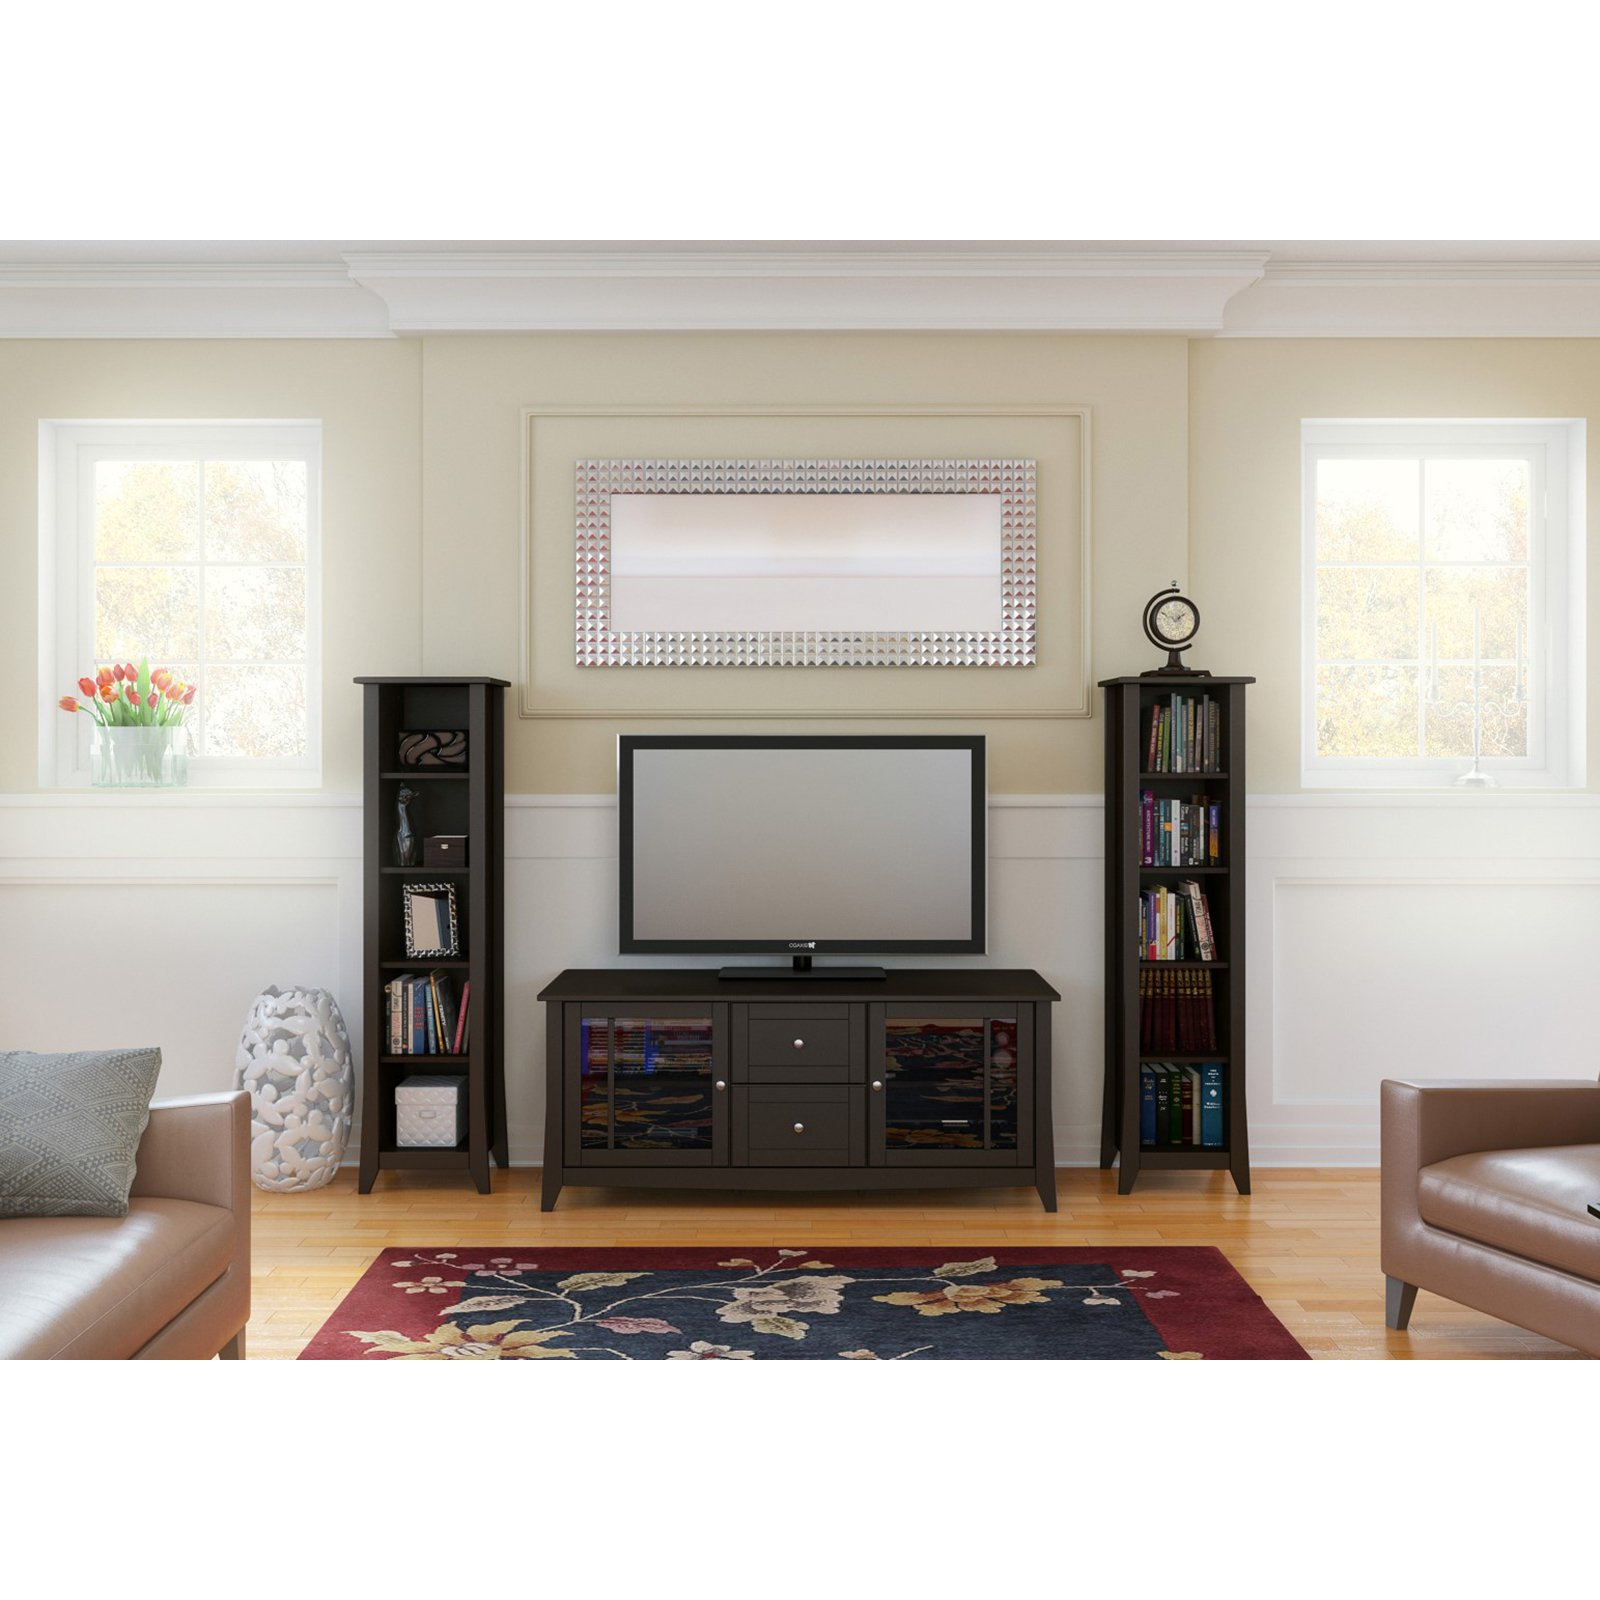 Elegance 58 in. TV Console with Bookcase